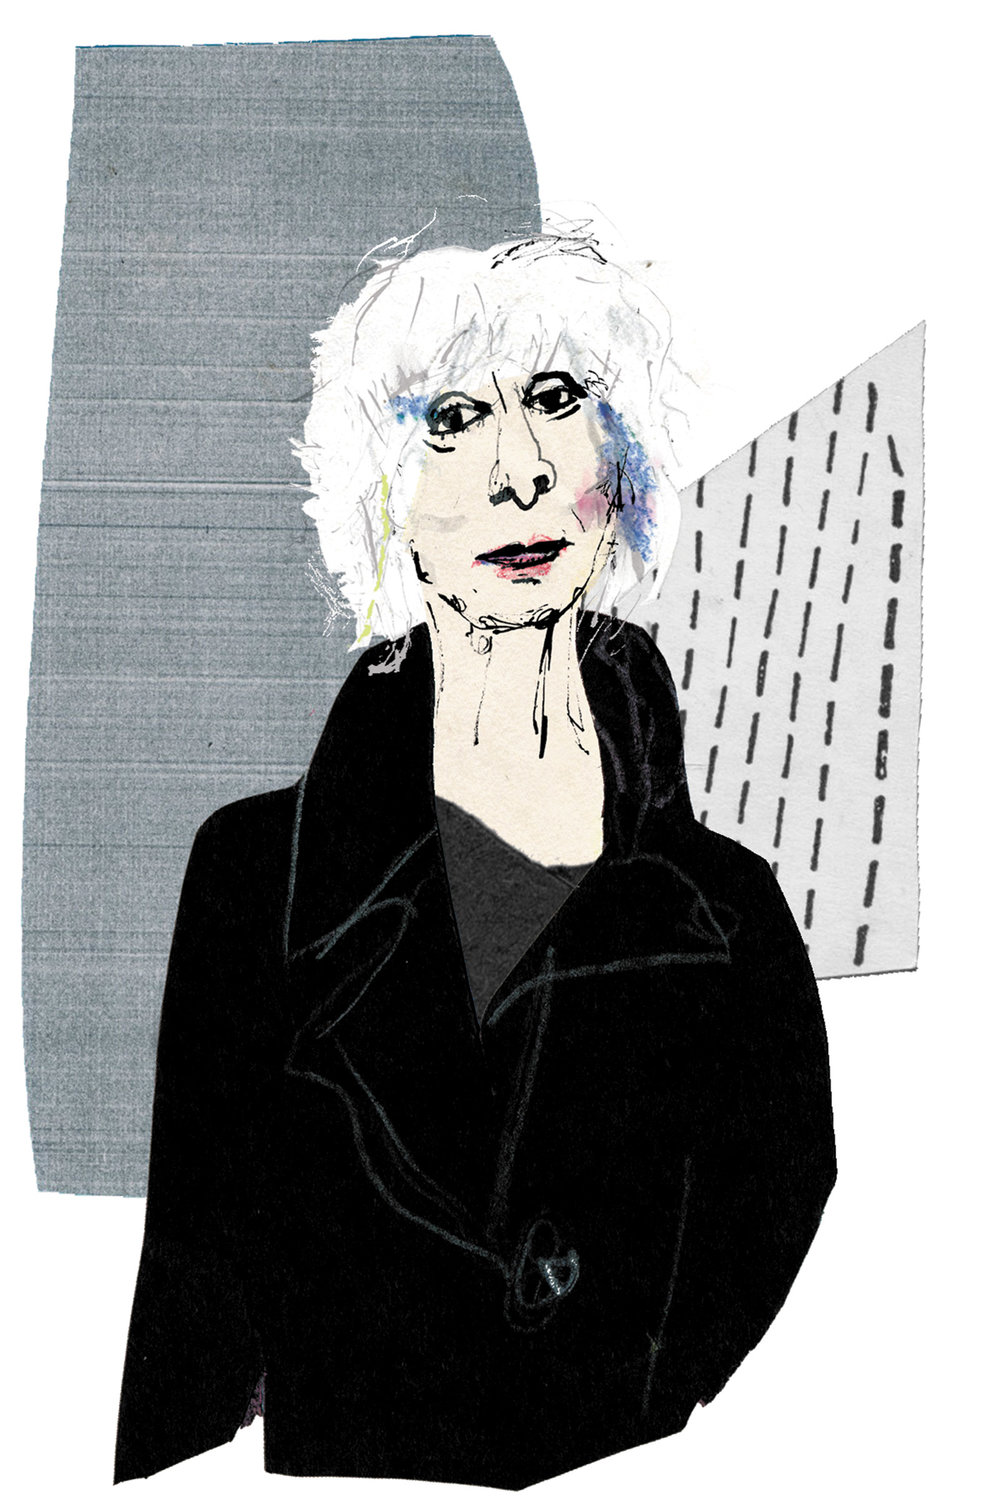 Illustration by Joanna Neborsky, from  The New York Review of Books